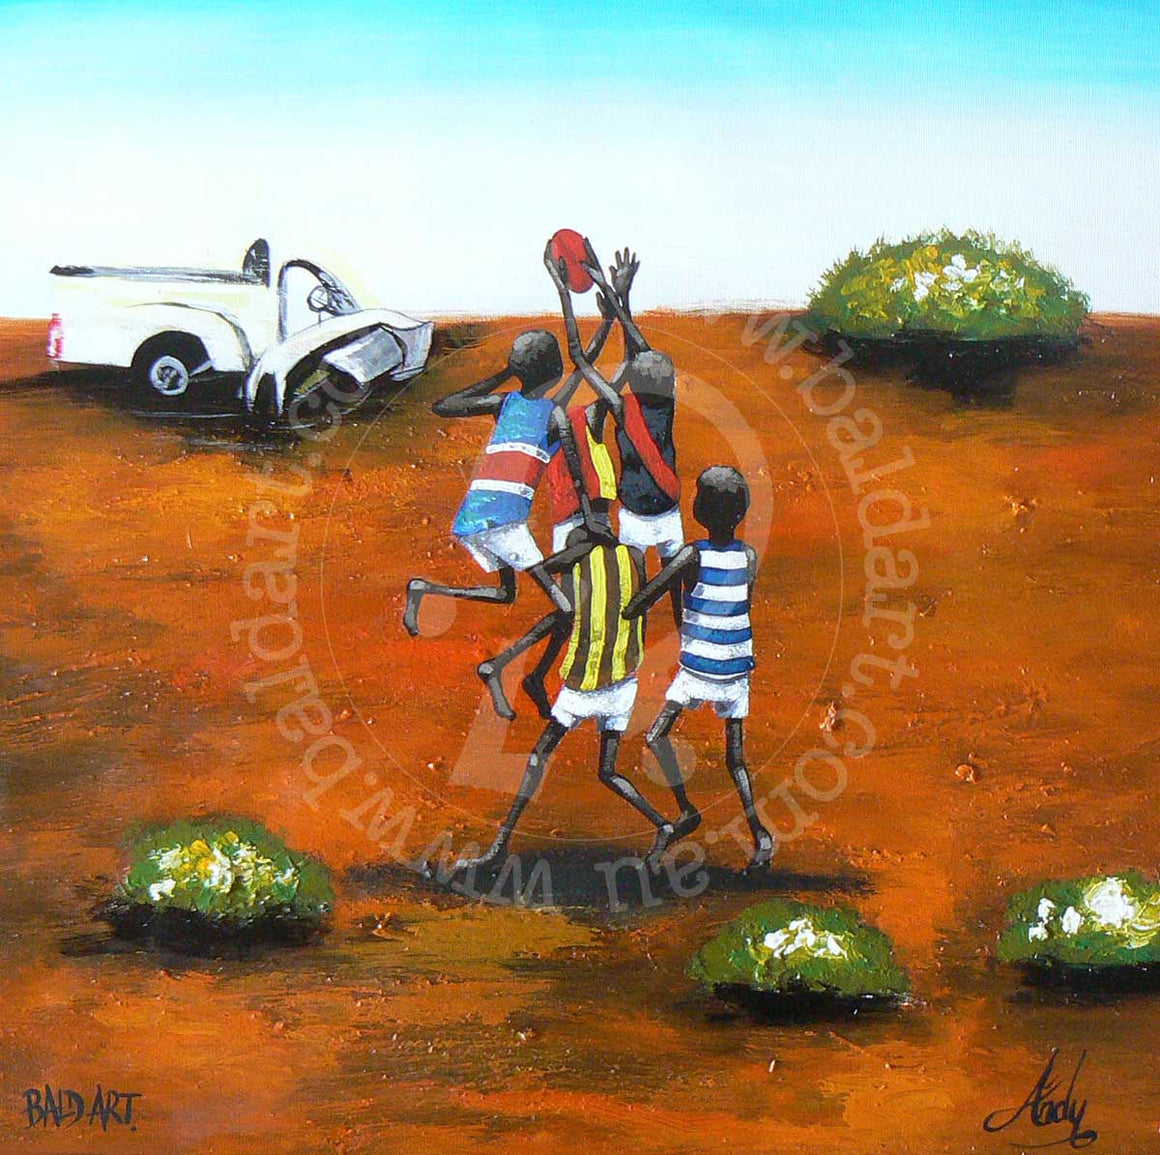 aussie rules football artwork by andy baker of bald art